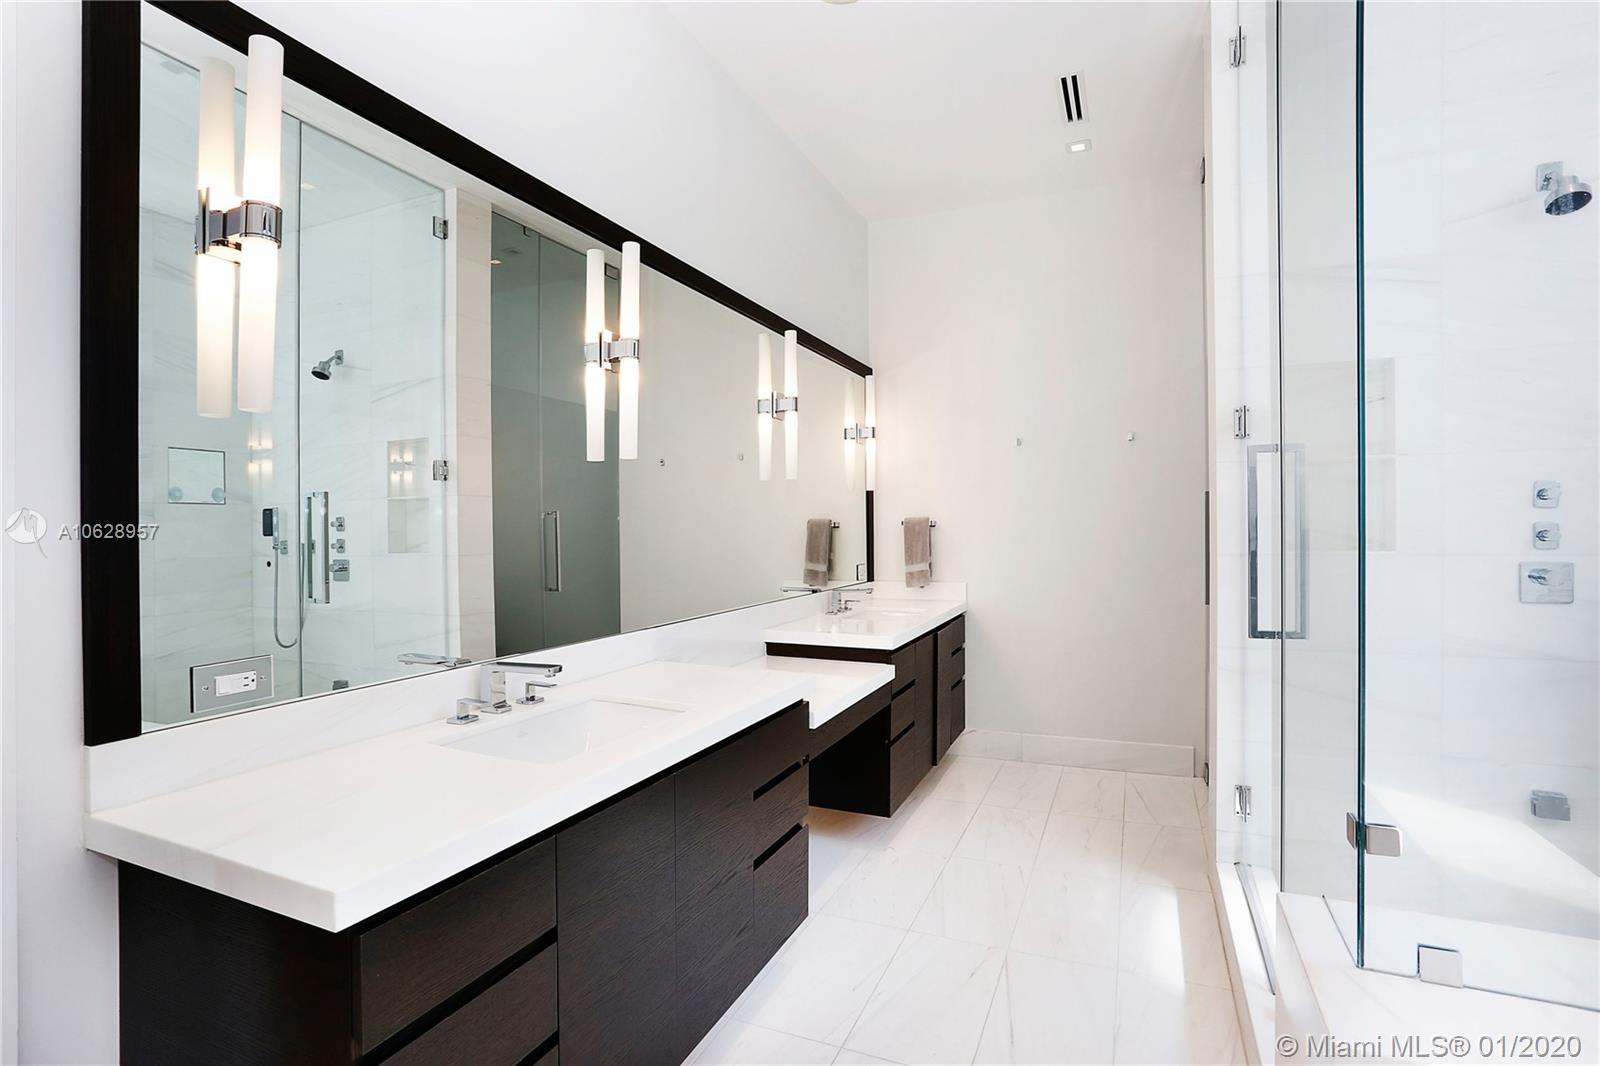 555 Arvida pkwy- coral-gables-fl-33156-a10628957-Pic27